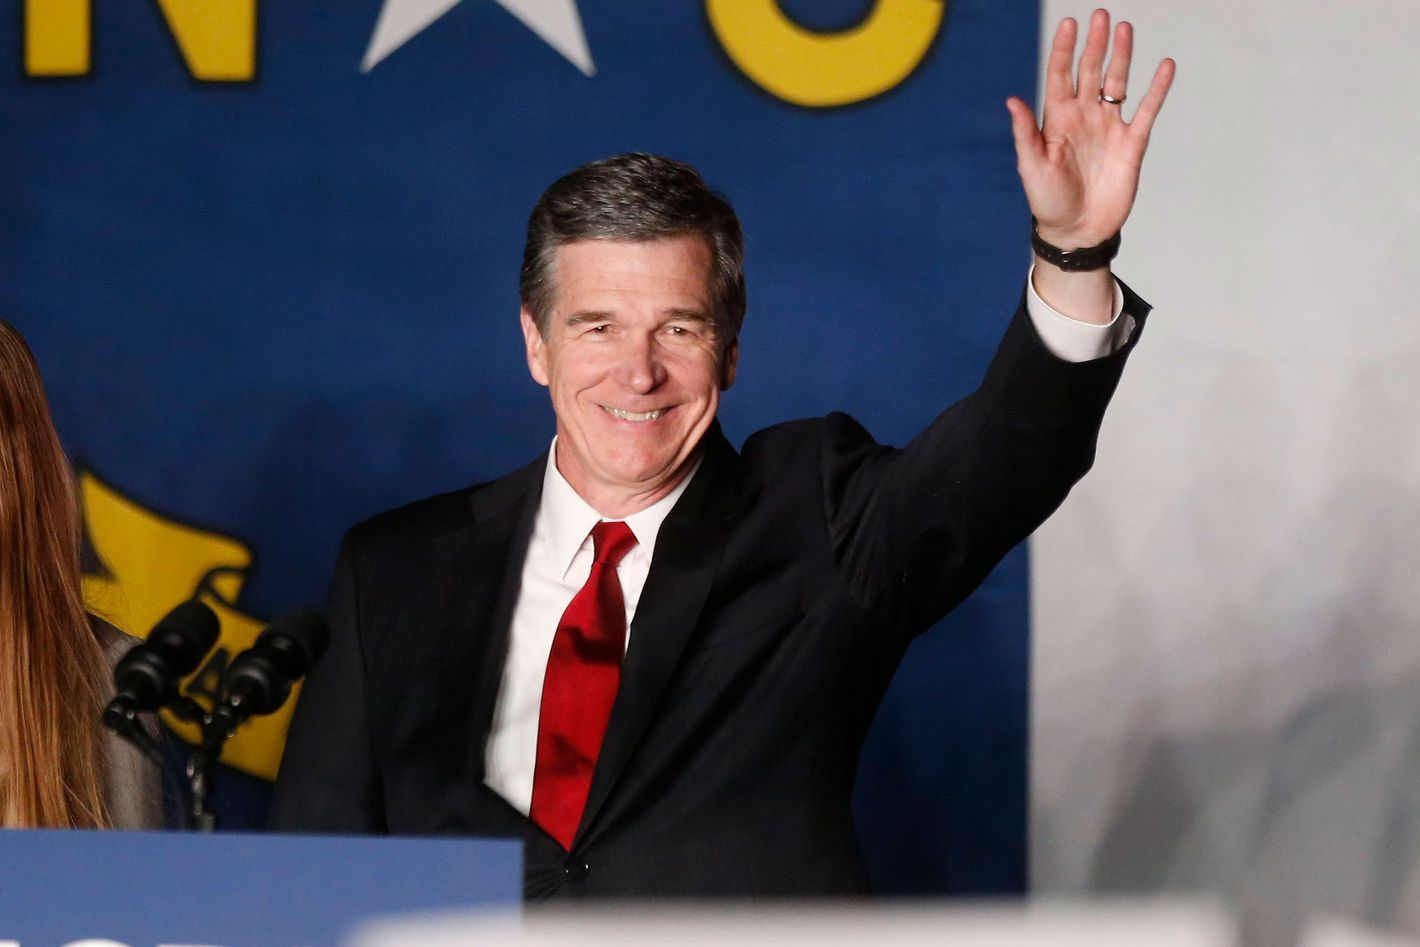 North Carolina Will Repeal Its Anti-Transgender Bathroom Law, Says Governor-Elect